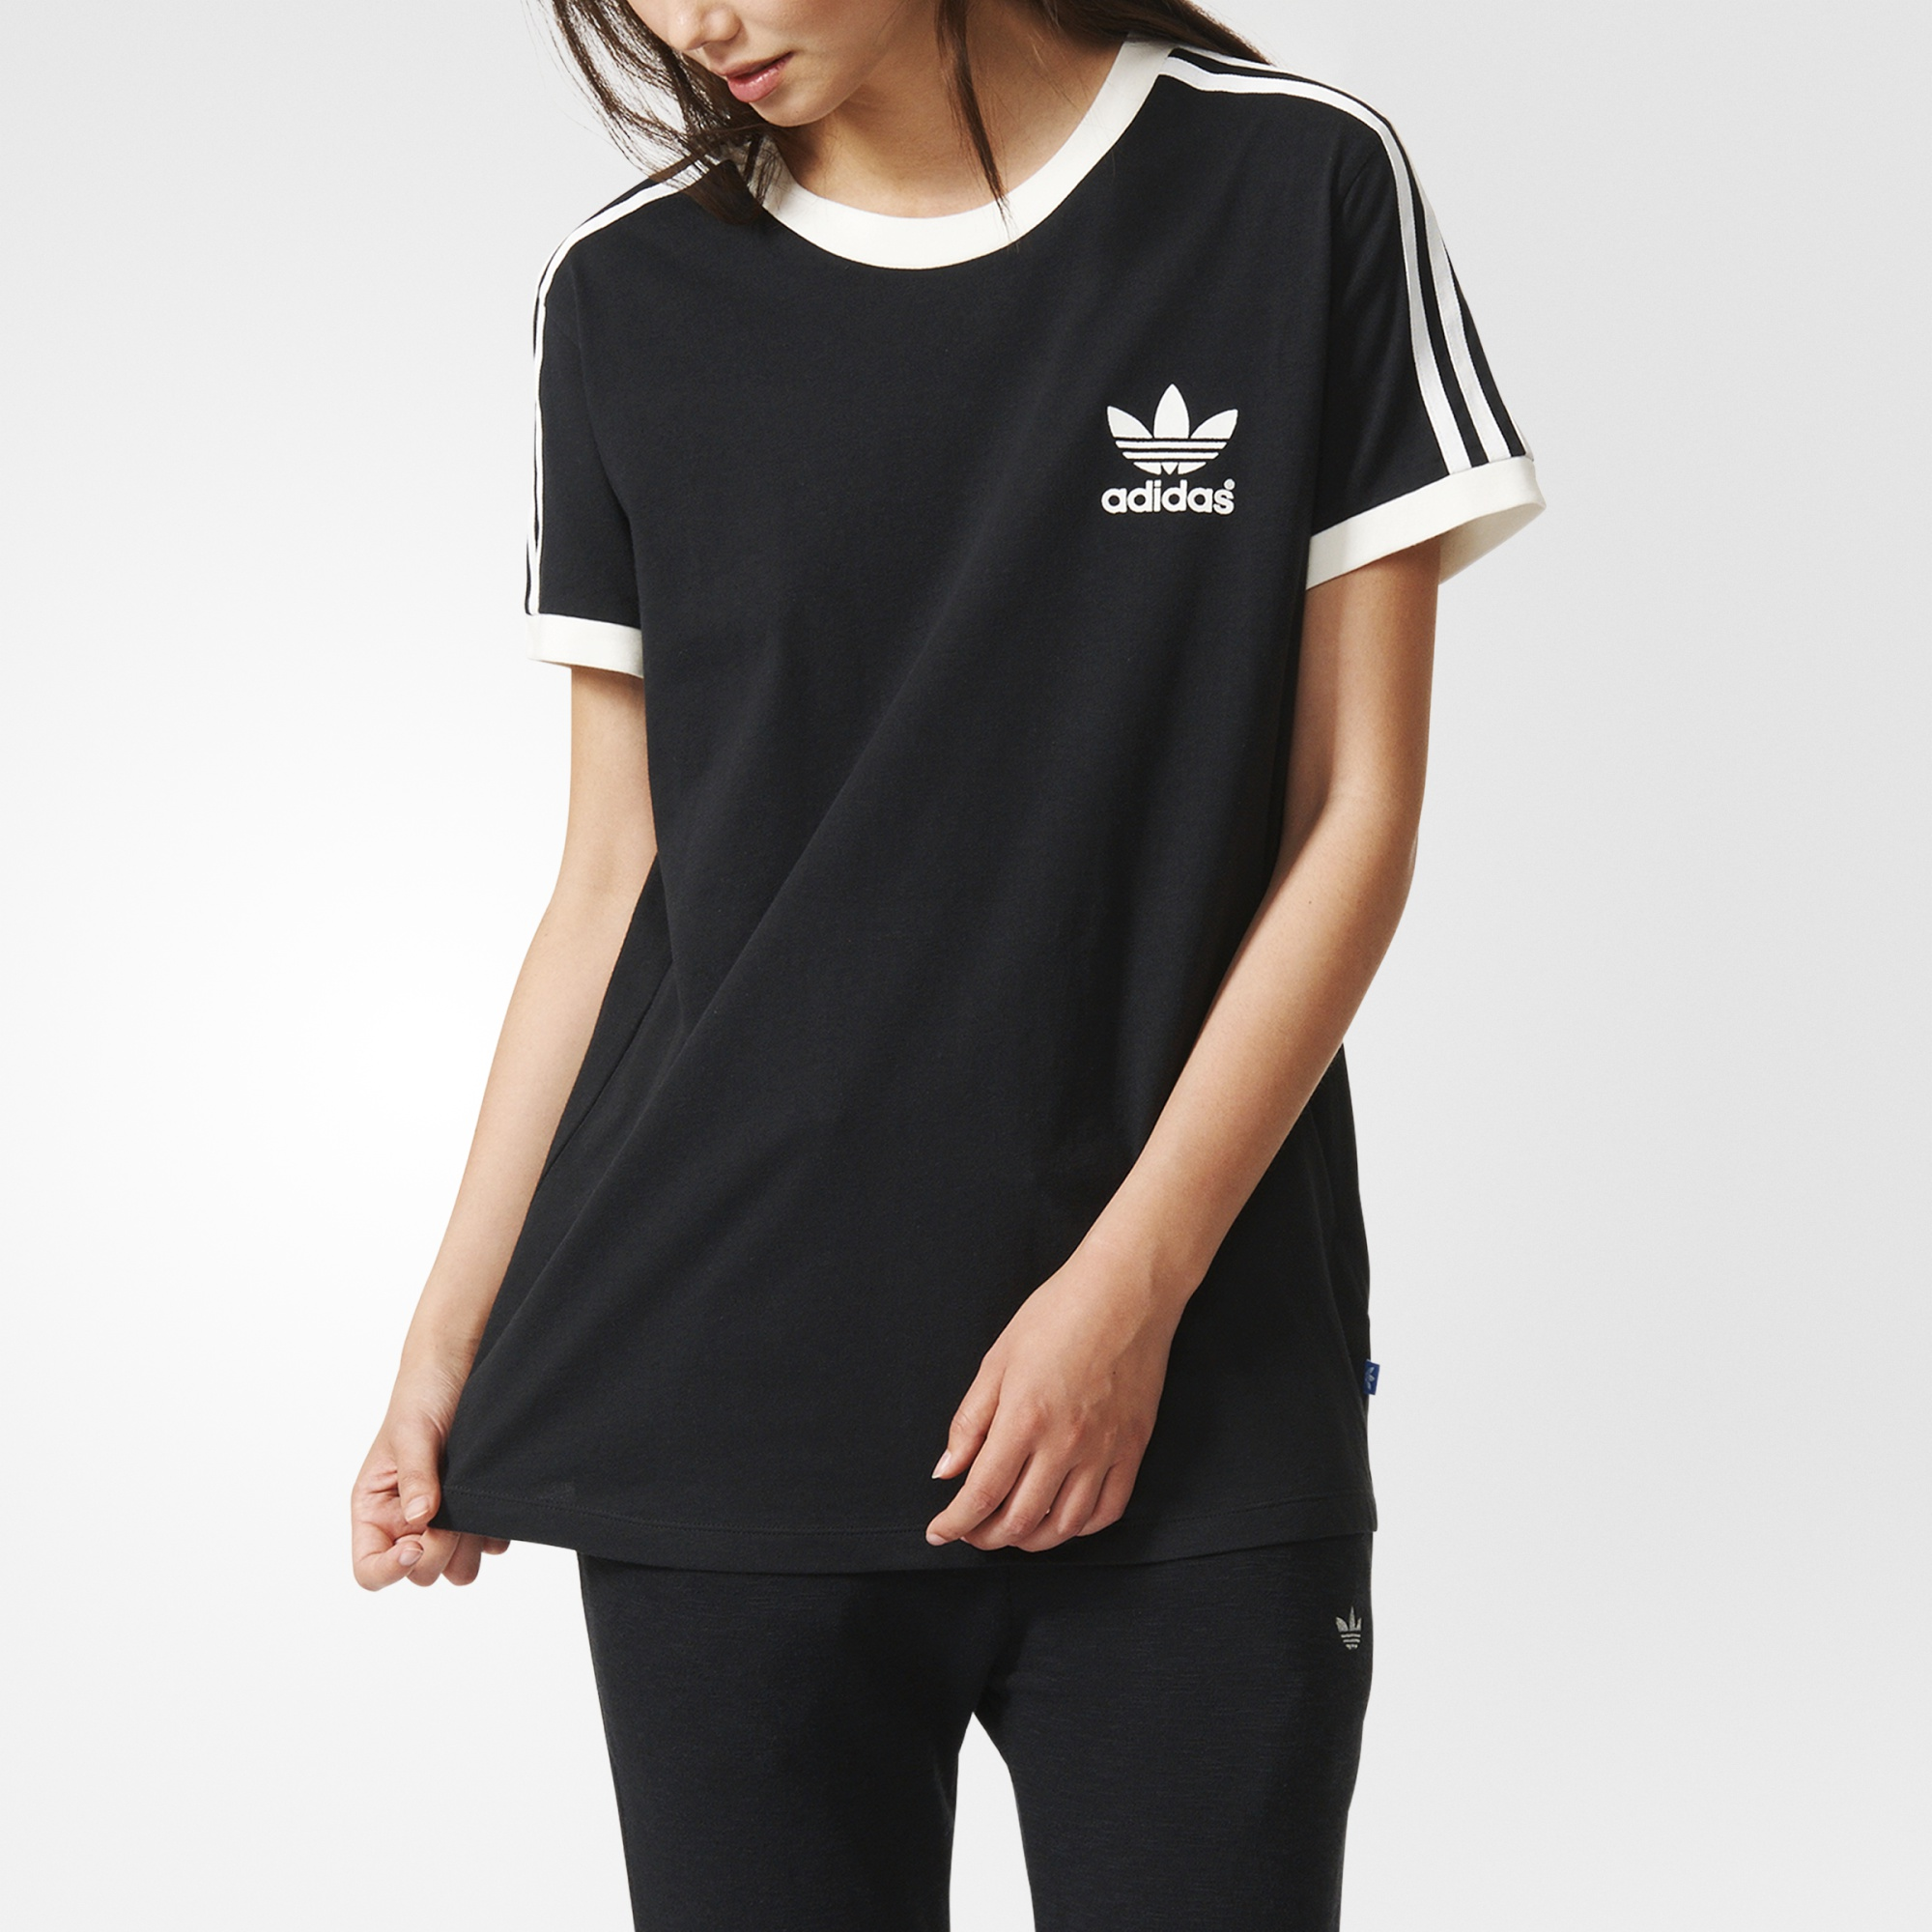 adidas 3 stripes tee black adidas uk. Black Bedroom Furniture Sets. Home Design Ideas